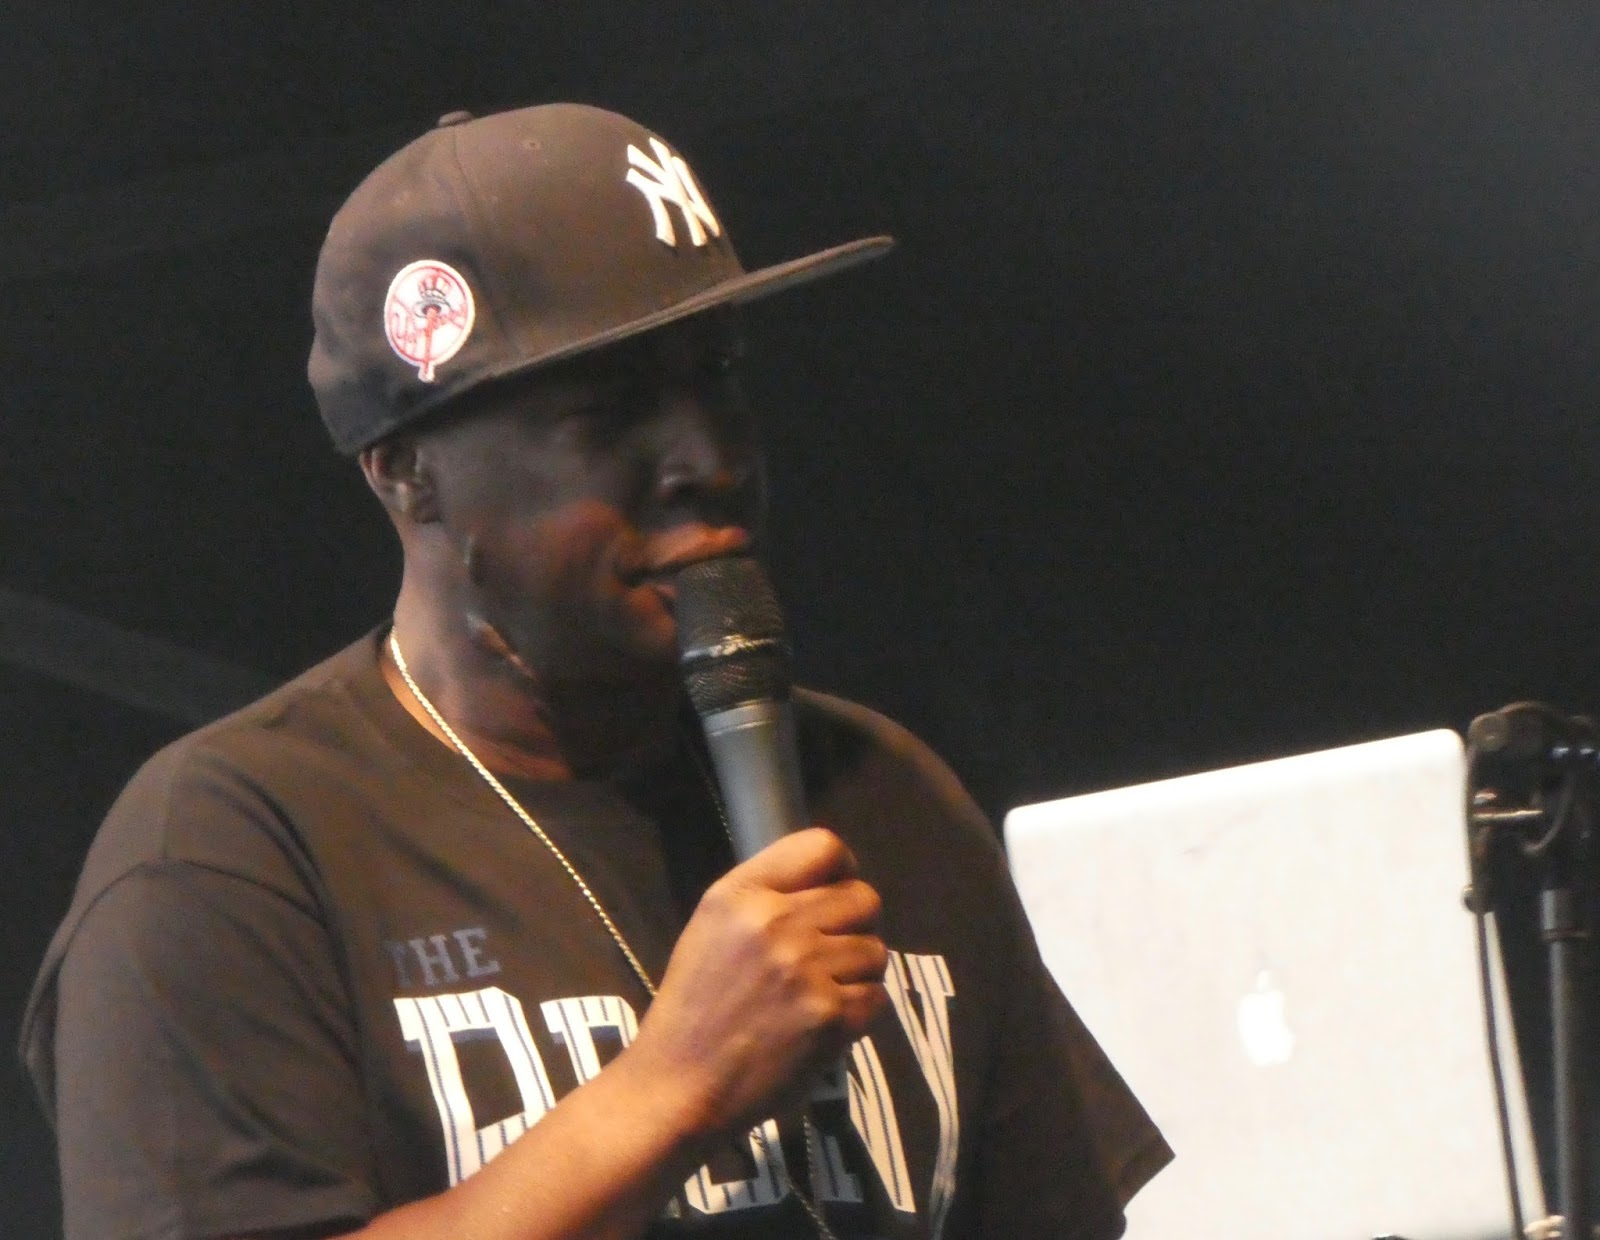 Corbridge Festival 2016 - Grandmaster Flash